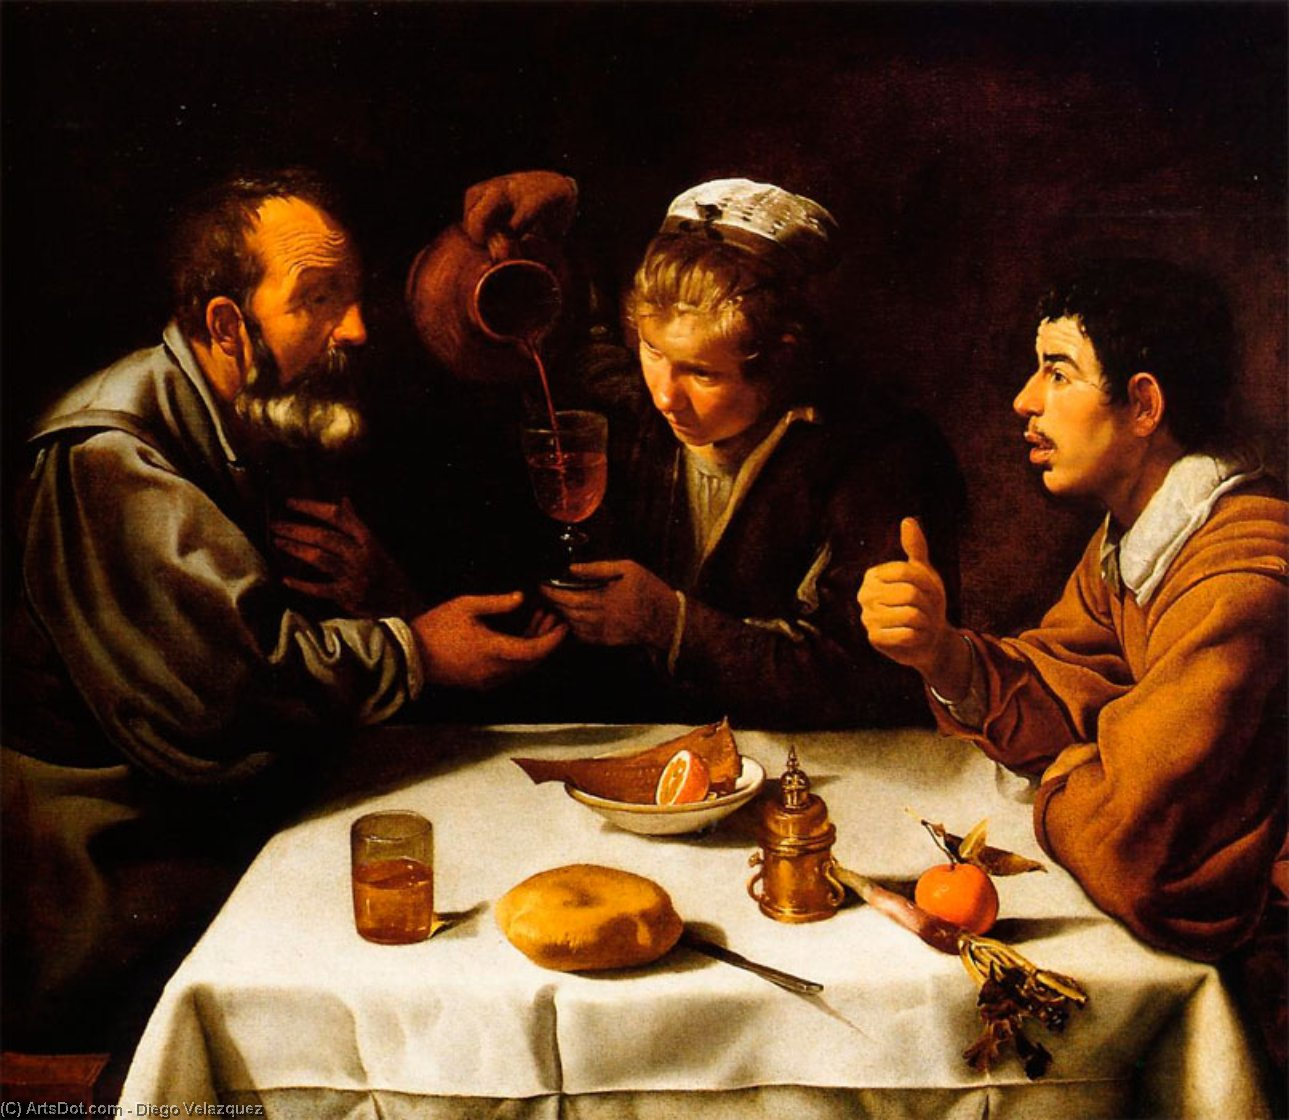 The Lunch, Oil On Canvas by Diego Velazquez (1599-1660, Spain)